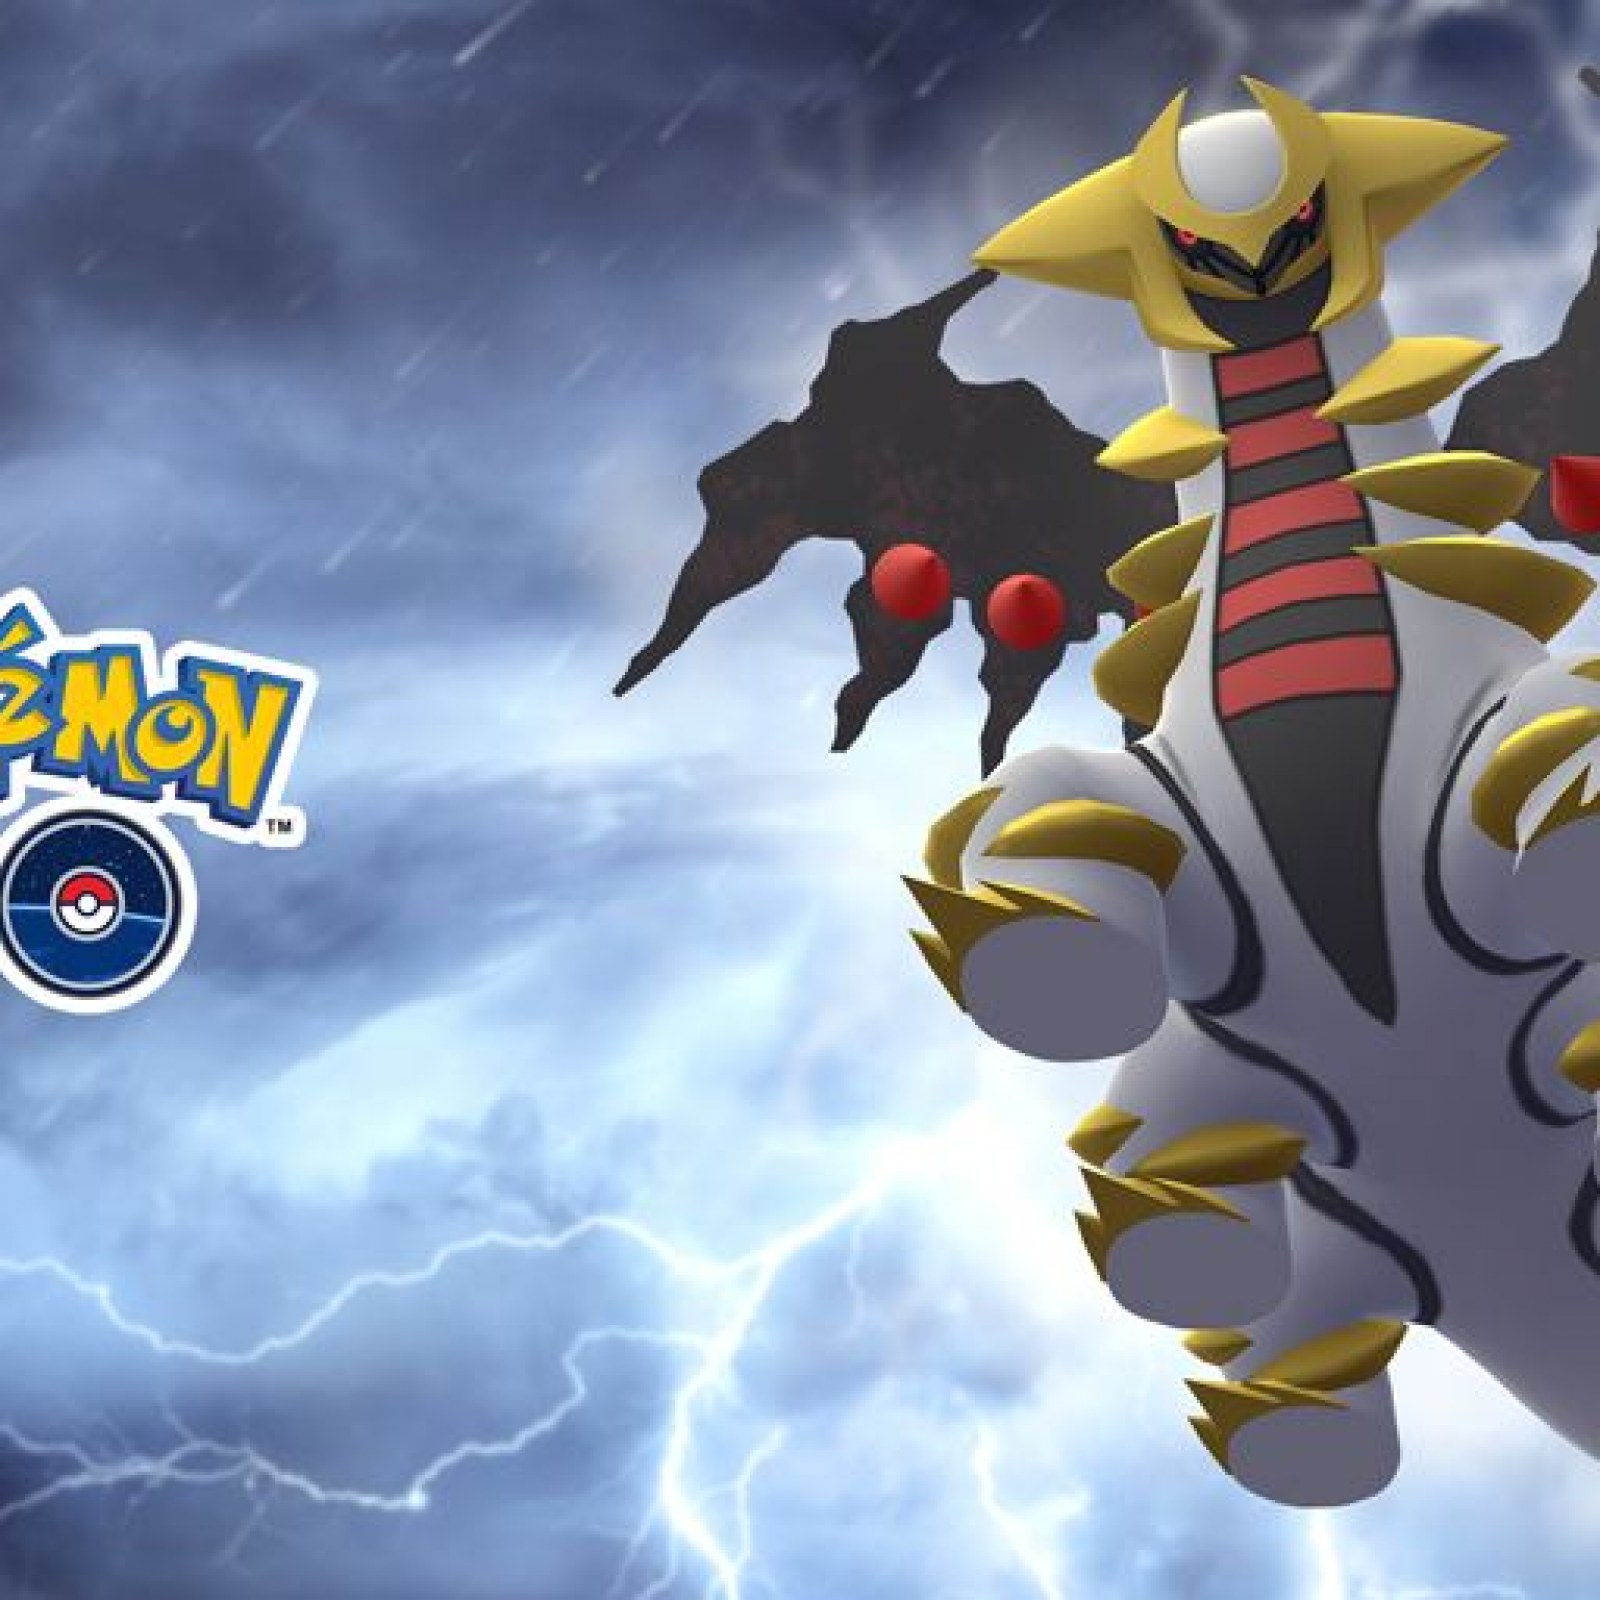 Pokémon Go' Giratina Raid Event: Start Time and Counters